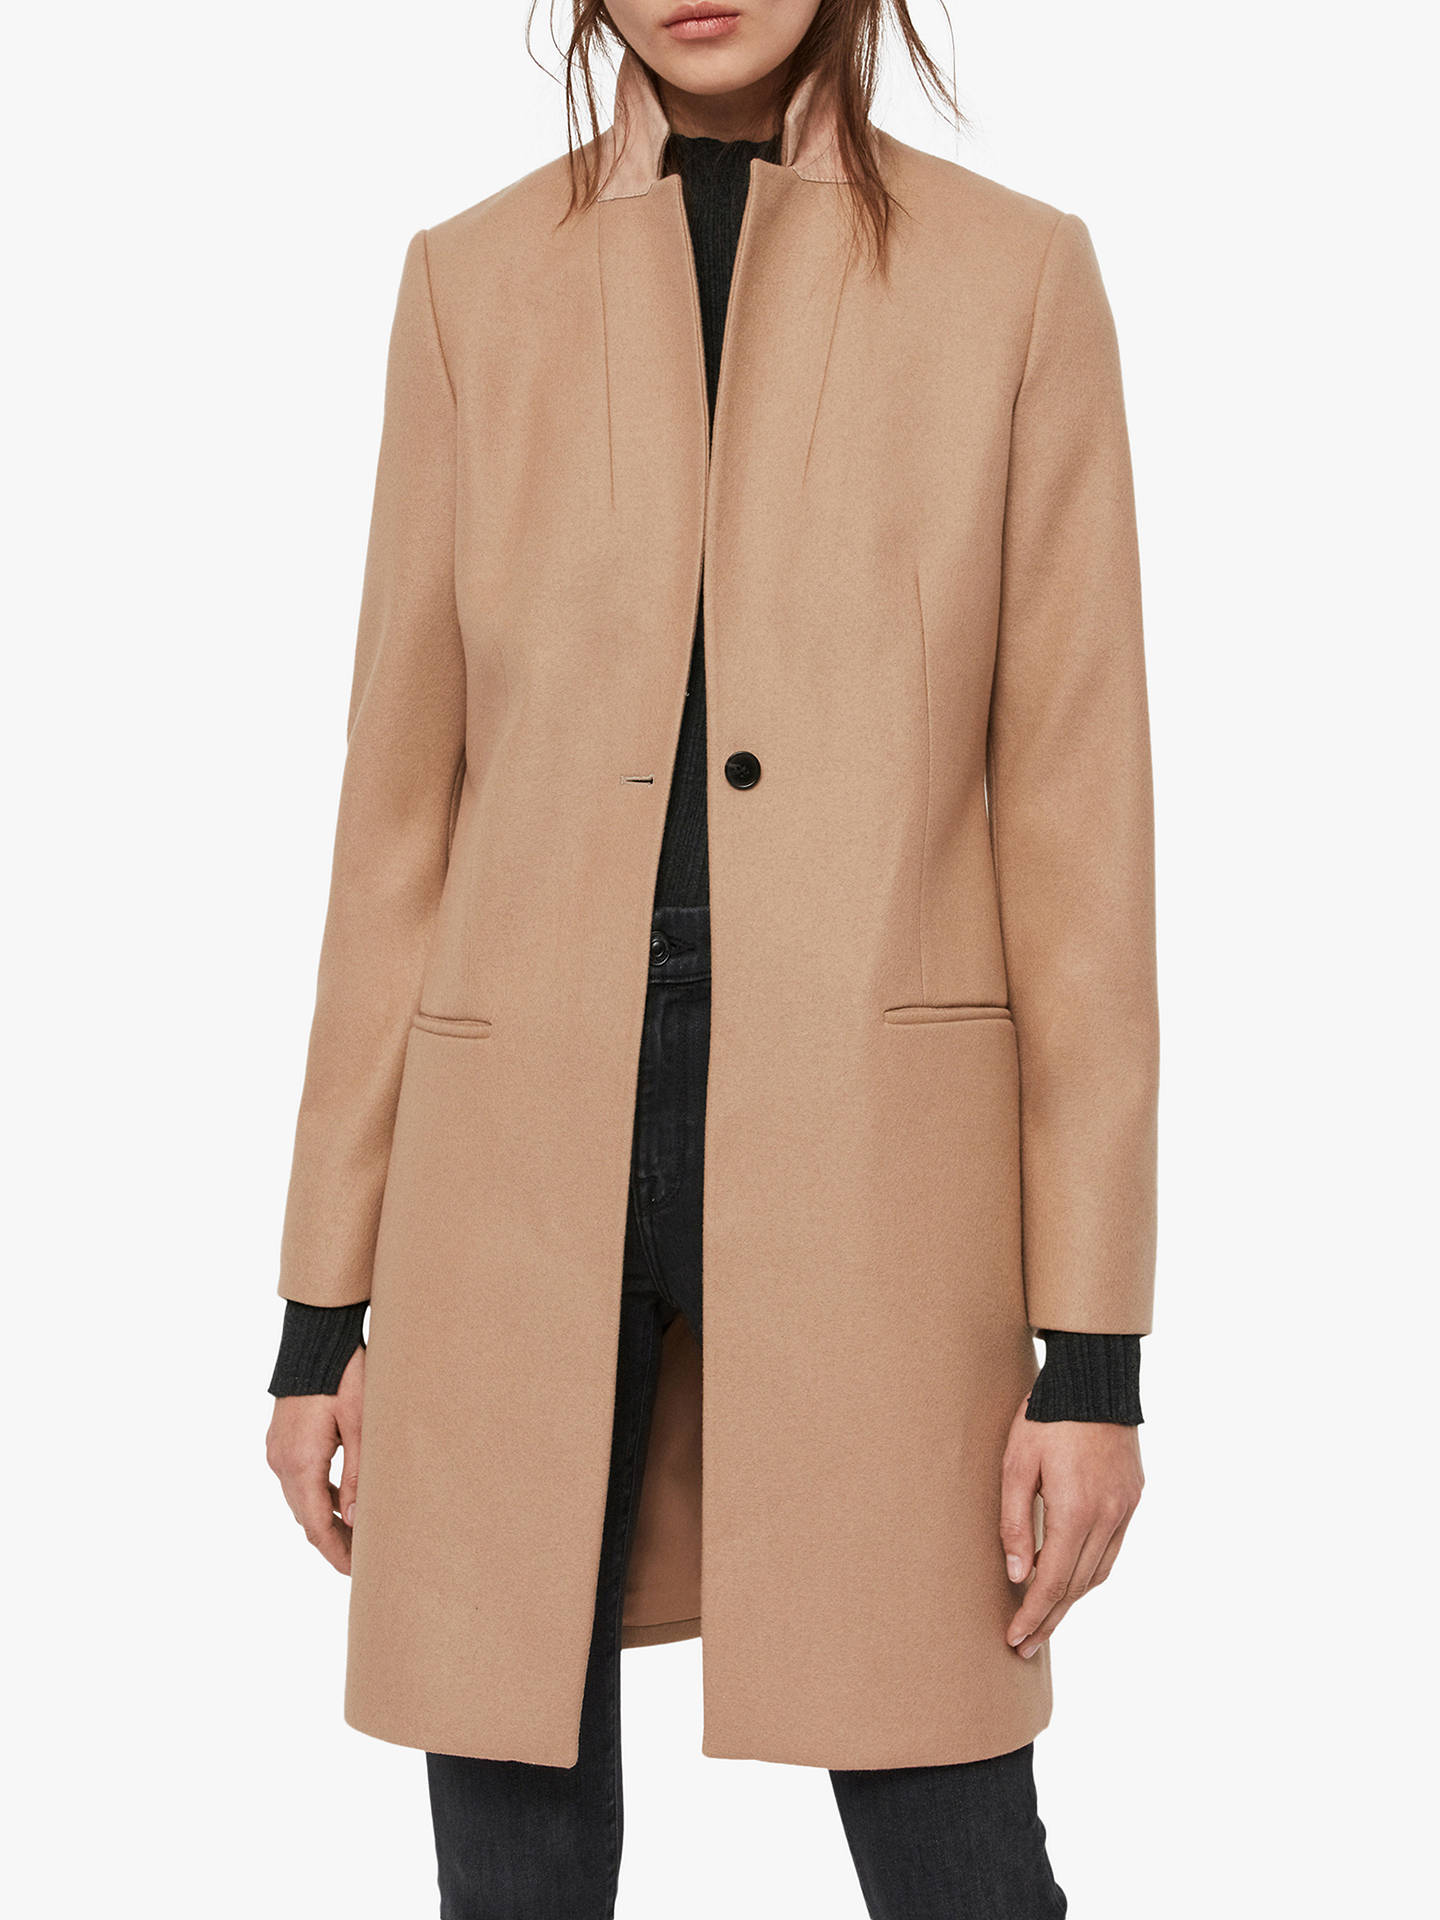 AllSaints Leni Coat, Camel Brown at John Lewis & Partners